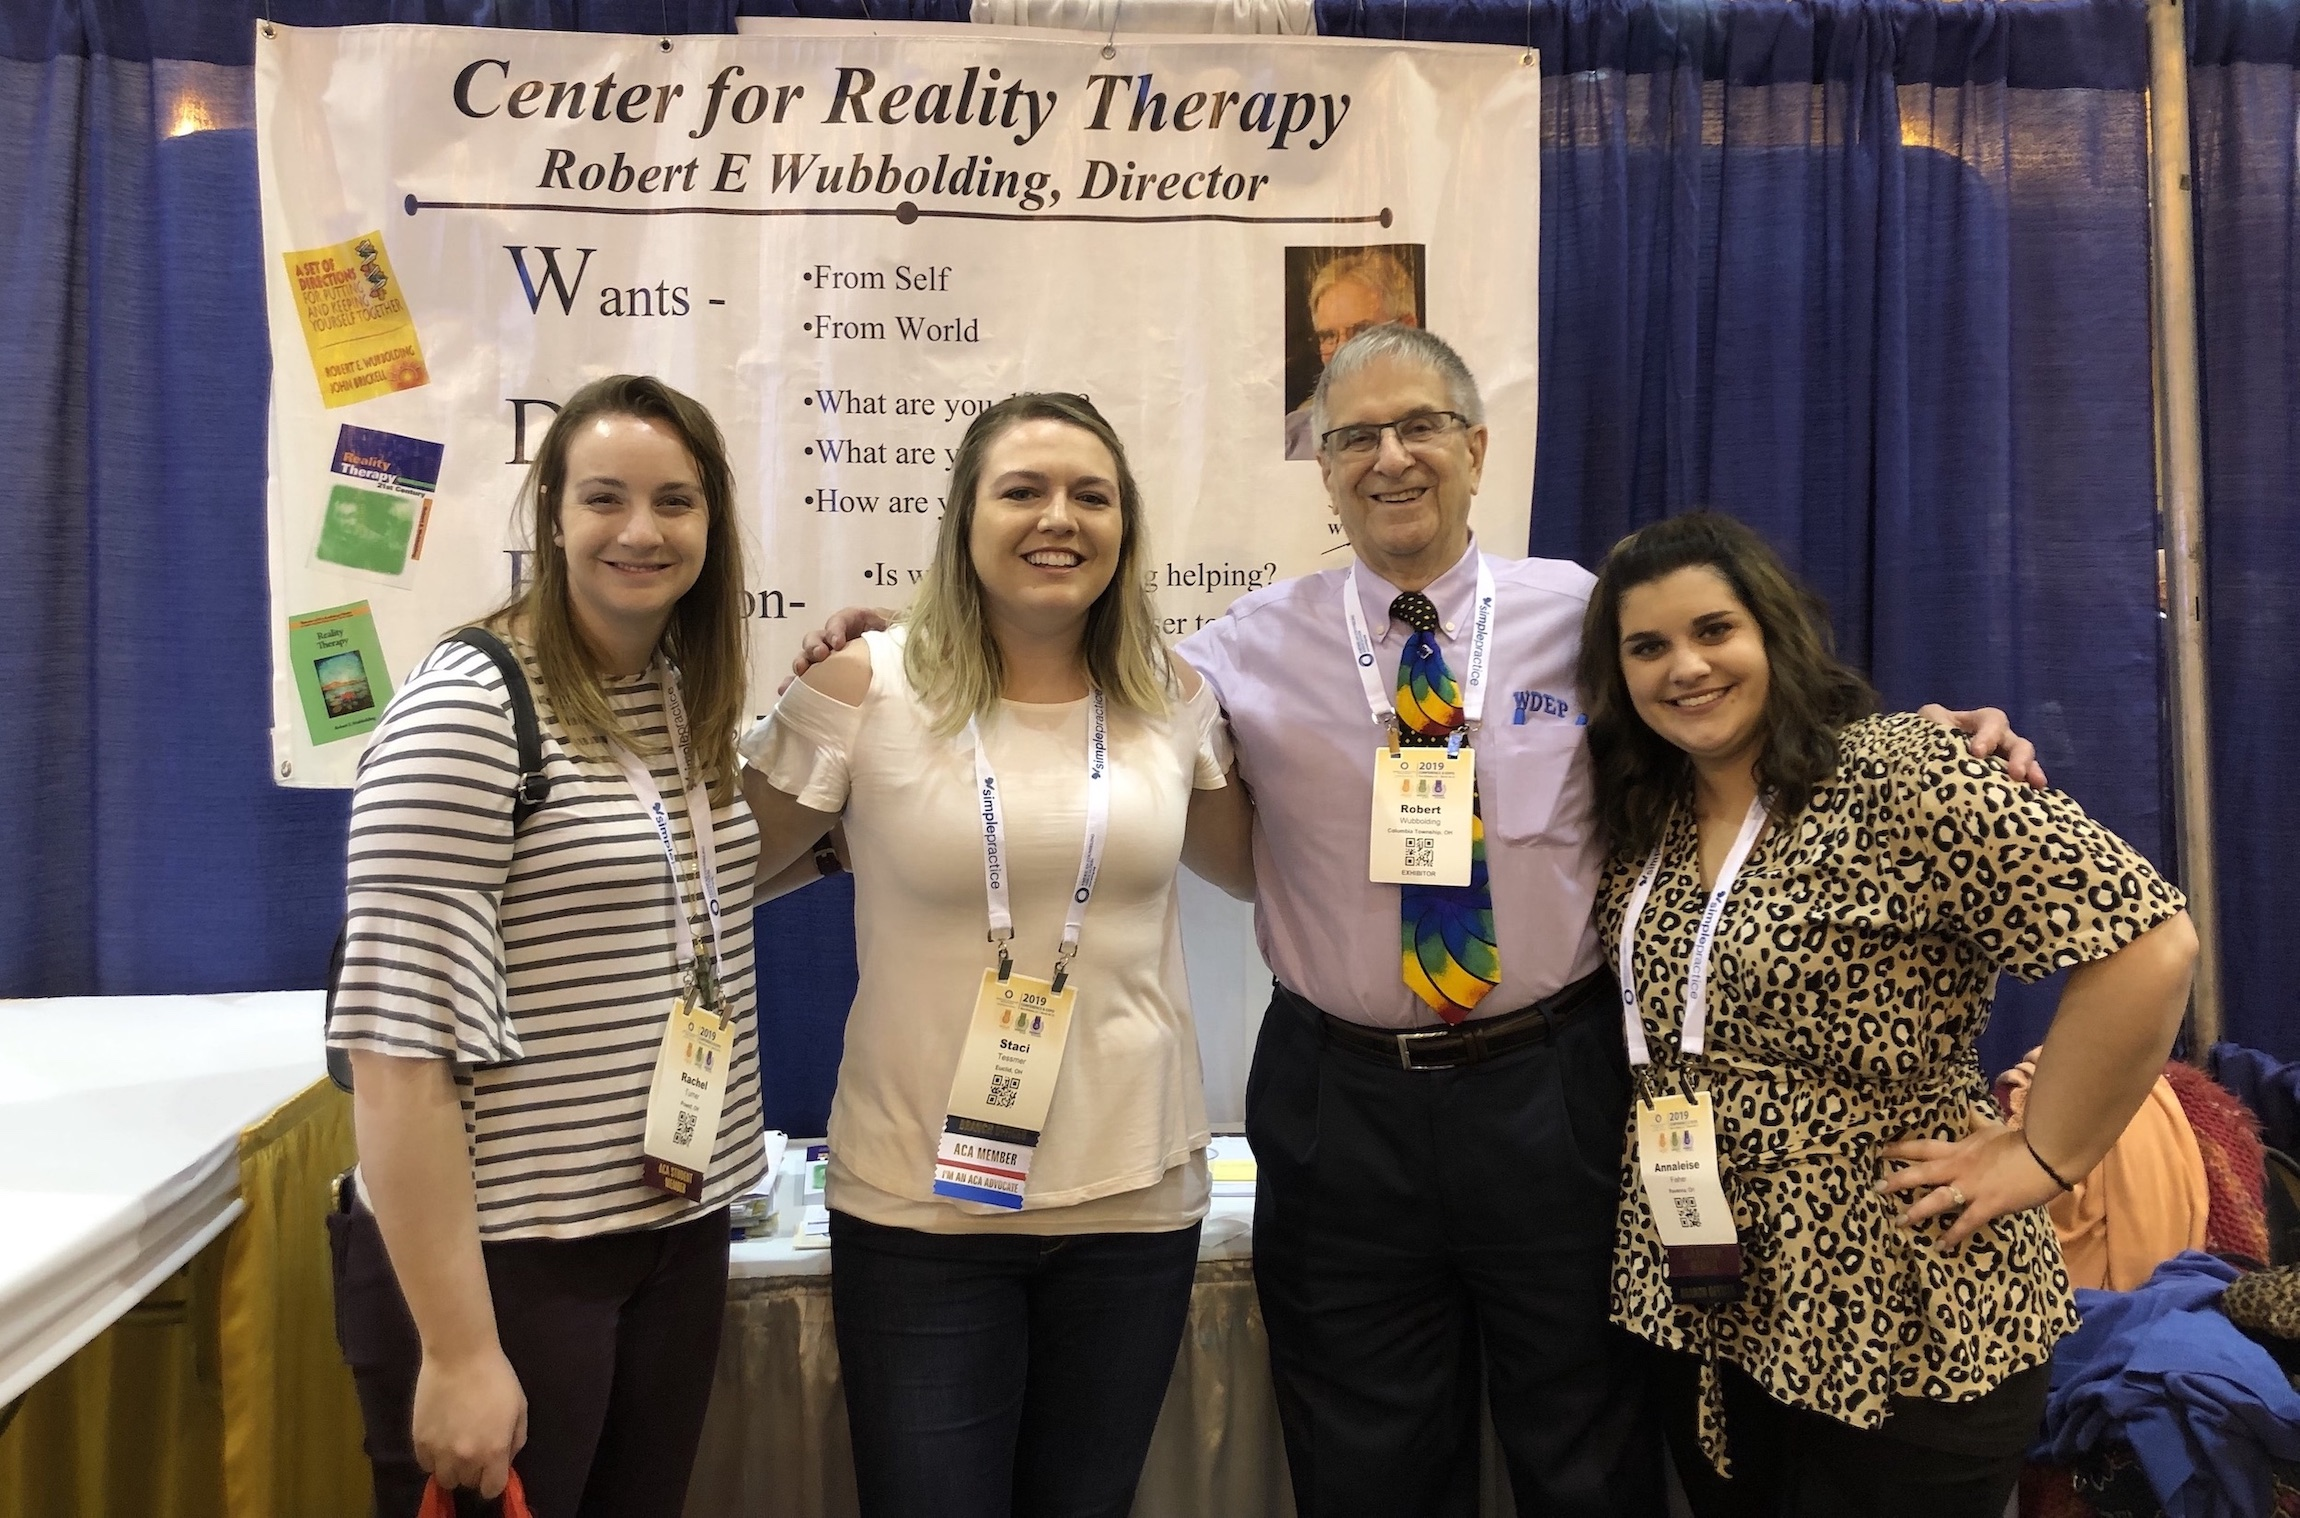 Staci Tessmer in a group at a conference